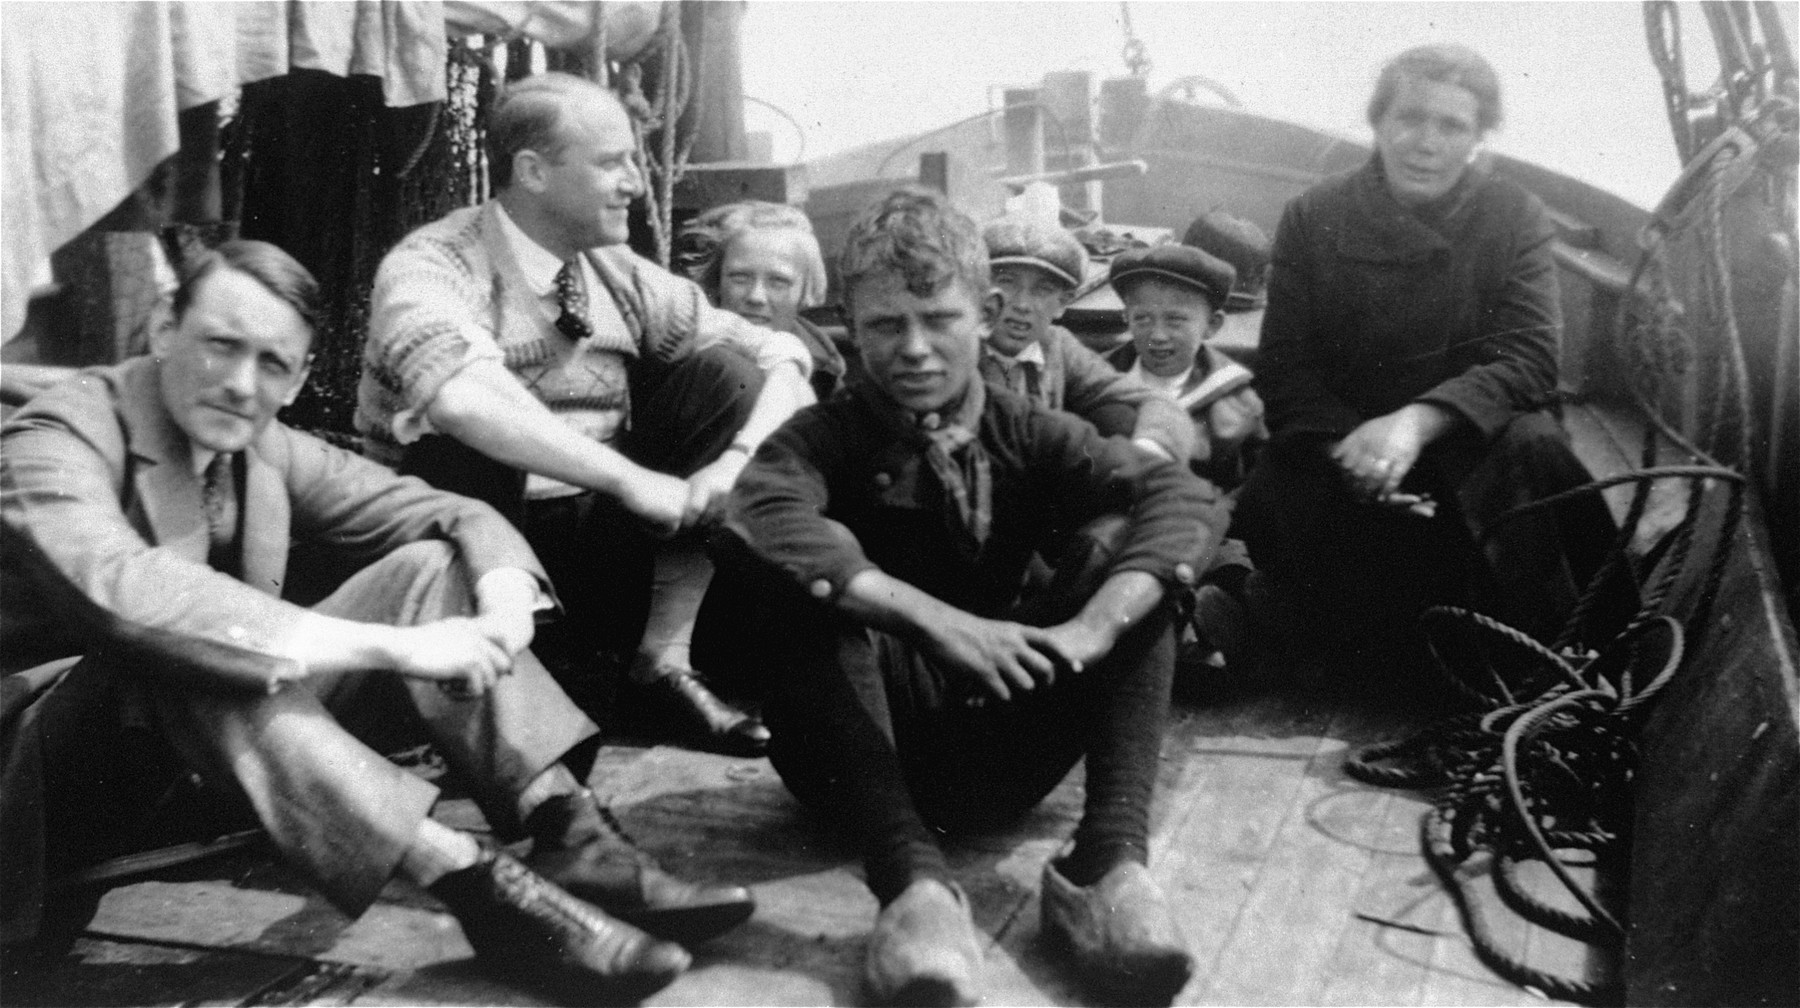 Group portrait of passengers on a ship, among whom is Willem Arondeus.  Later during the war, Arondeus led a gay resistance group in Amsterdam which was responsible for bombing the Amsterdam Population Registry offices.  The attack was carried out on 27 March 1943 in an effort to destroy government records of Jews and others sought by the Nazis.  As a result of the act, Arondeus was executed in 1943.  His rescue efforts have been recognized by by Yad Vashem and the USHMM.